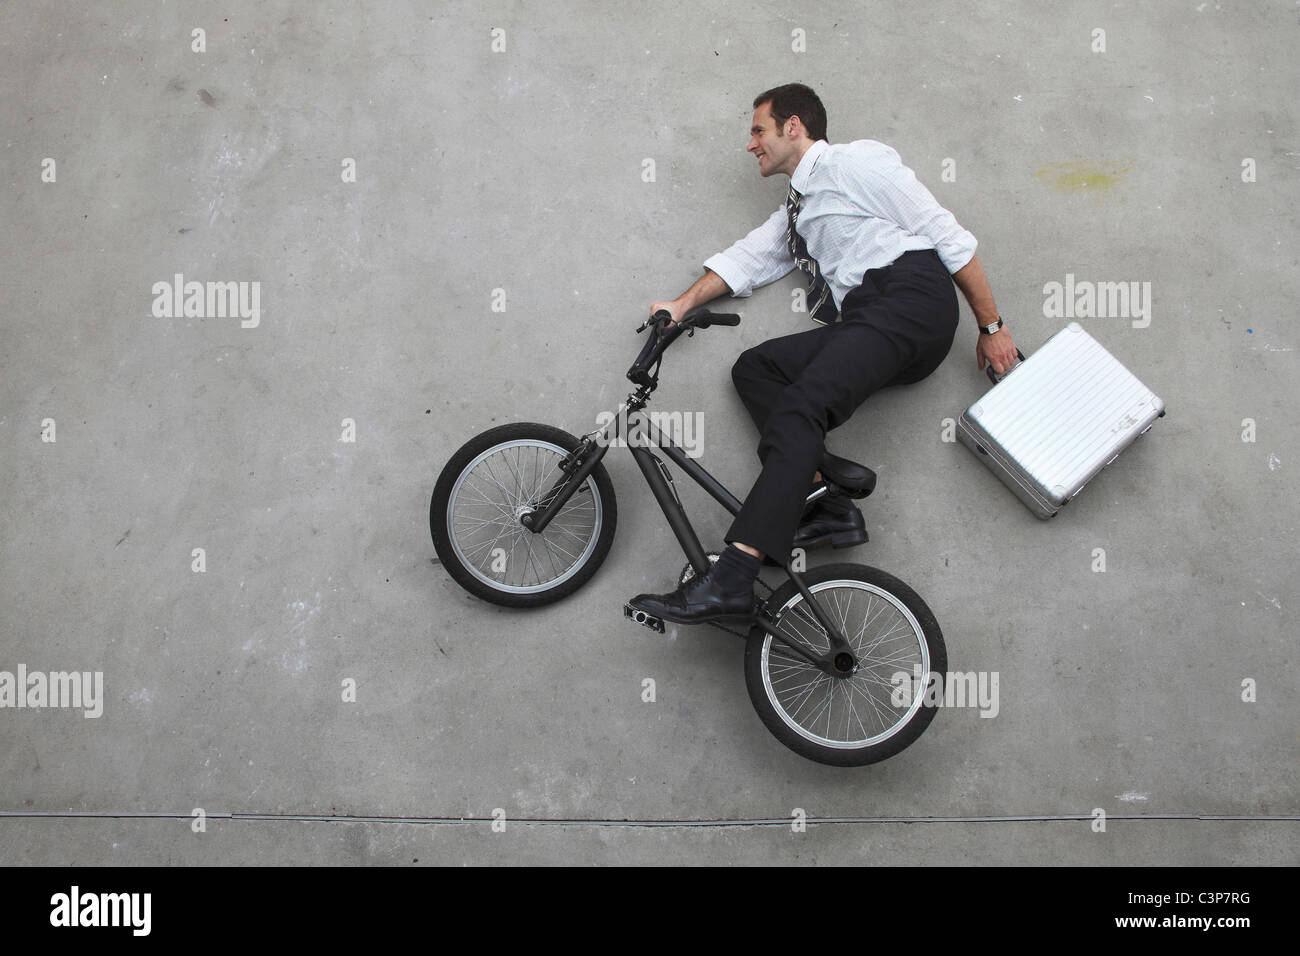 Businessman riding bicycle holding suitcase, elevated view Photo Stock